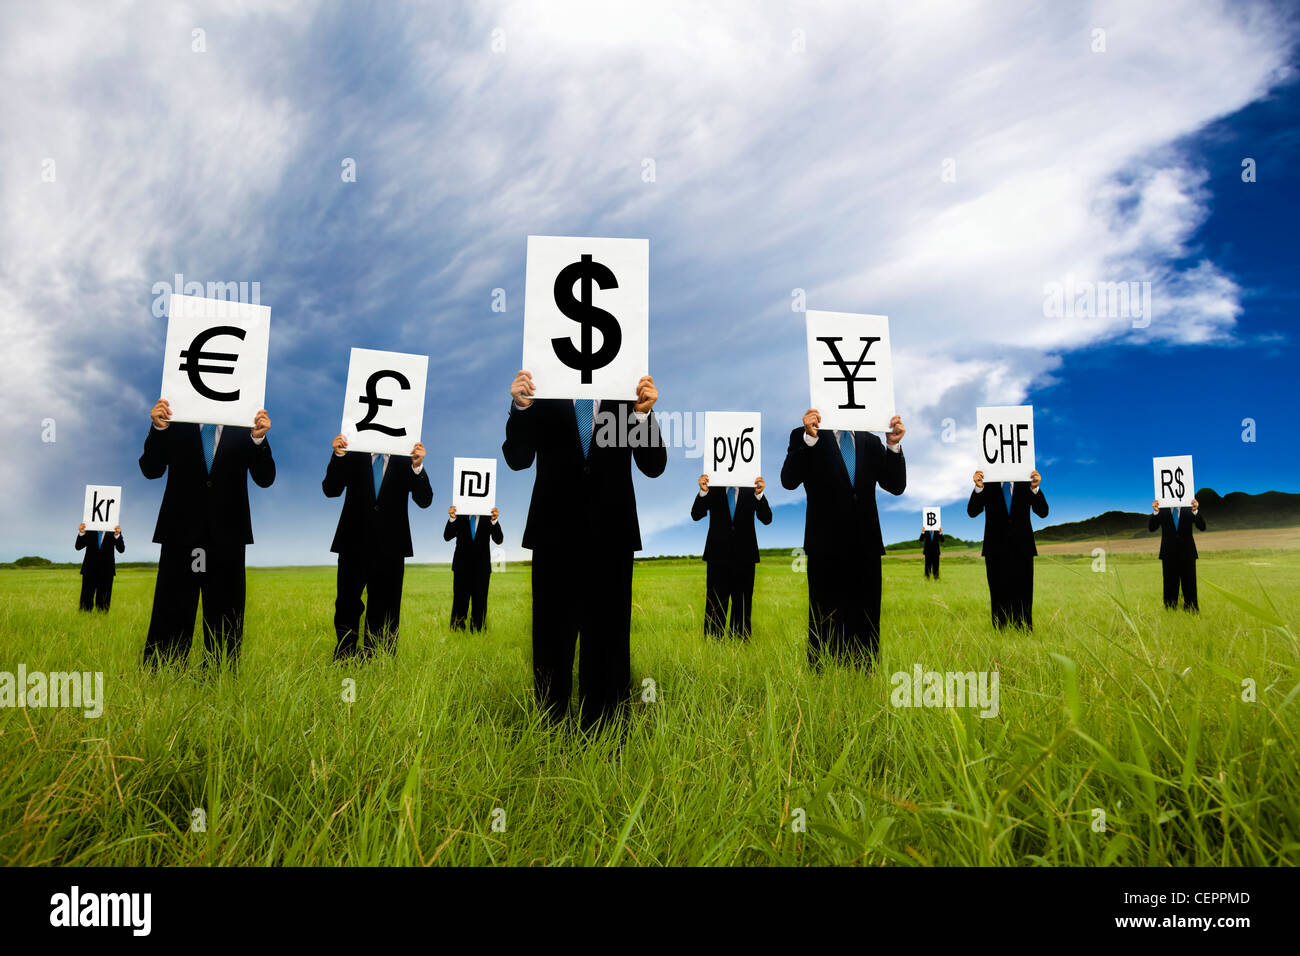 group of businessman holding different money symbol and stand in the field - Stock Image